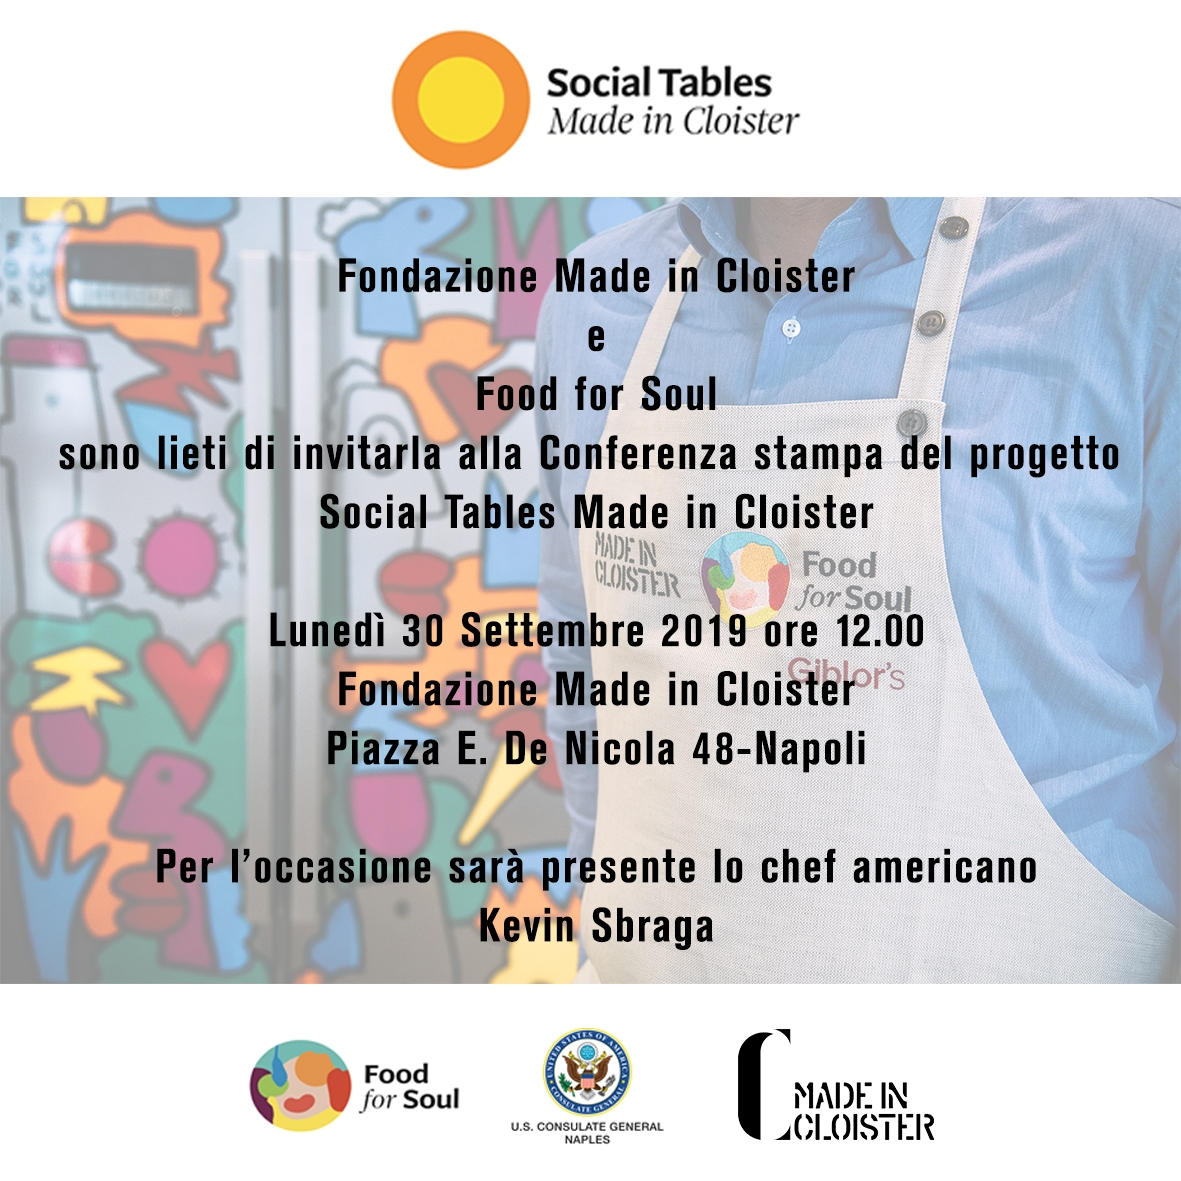 Conferenza stampa del progetto  Social Tables Made in Cloister